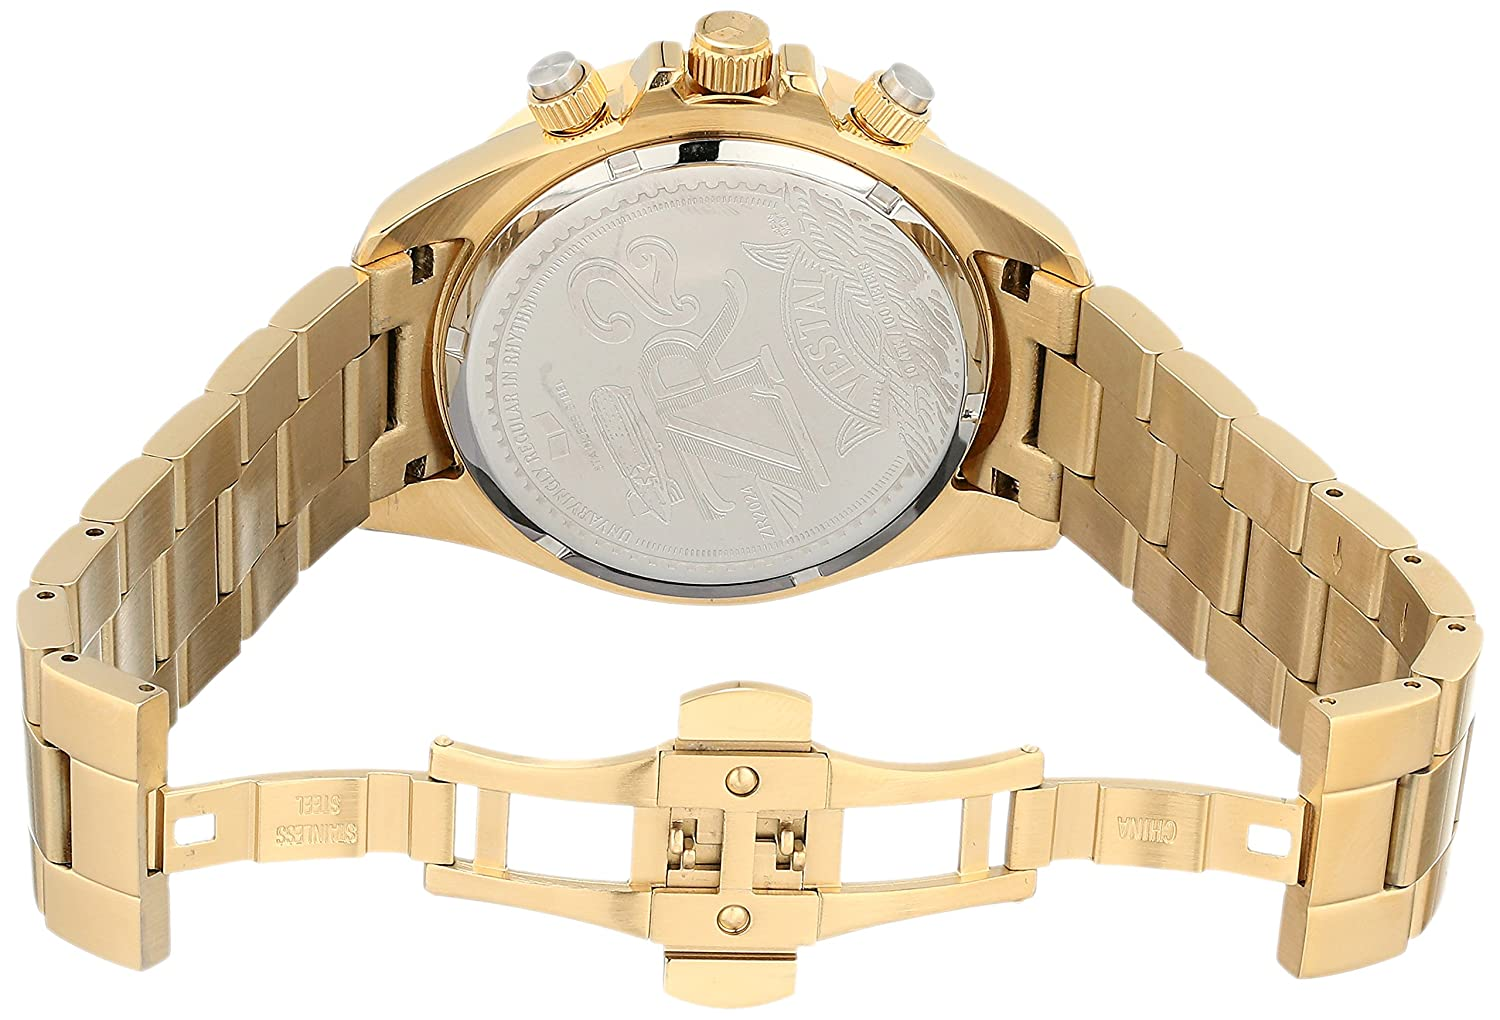 Amazon.com: Vestal Mens ZR2024 ZR-2 Analog Display Japanese Quartz Gold Watch: Vestal: Watches